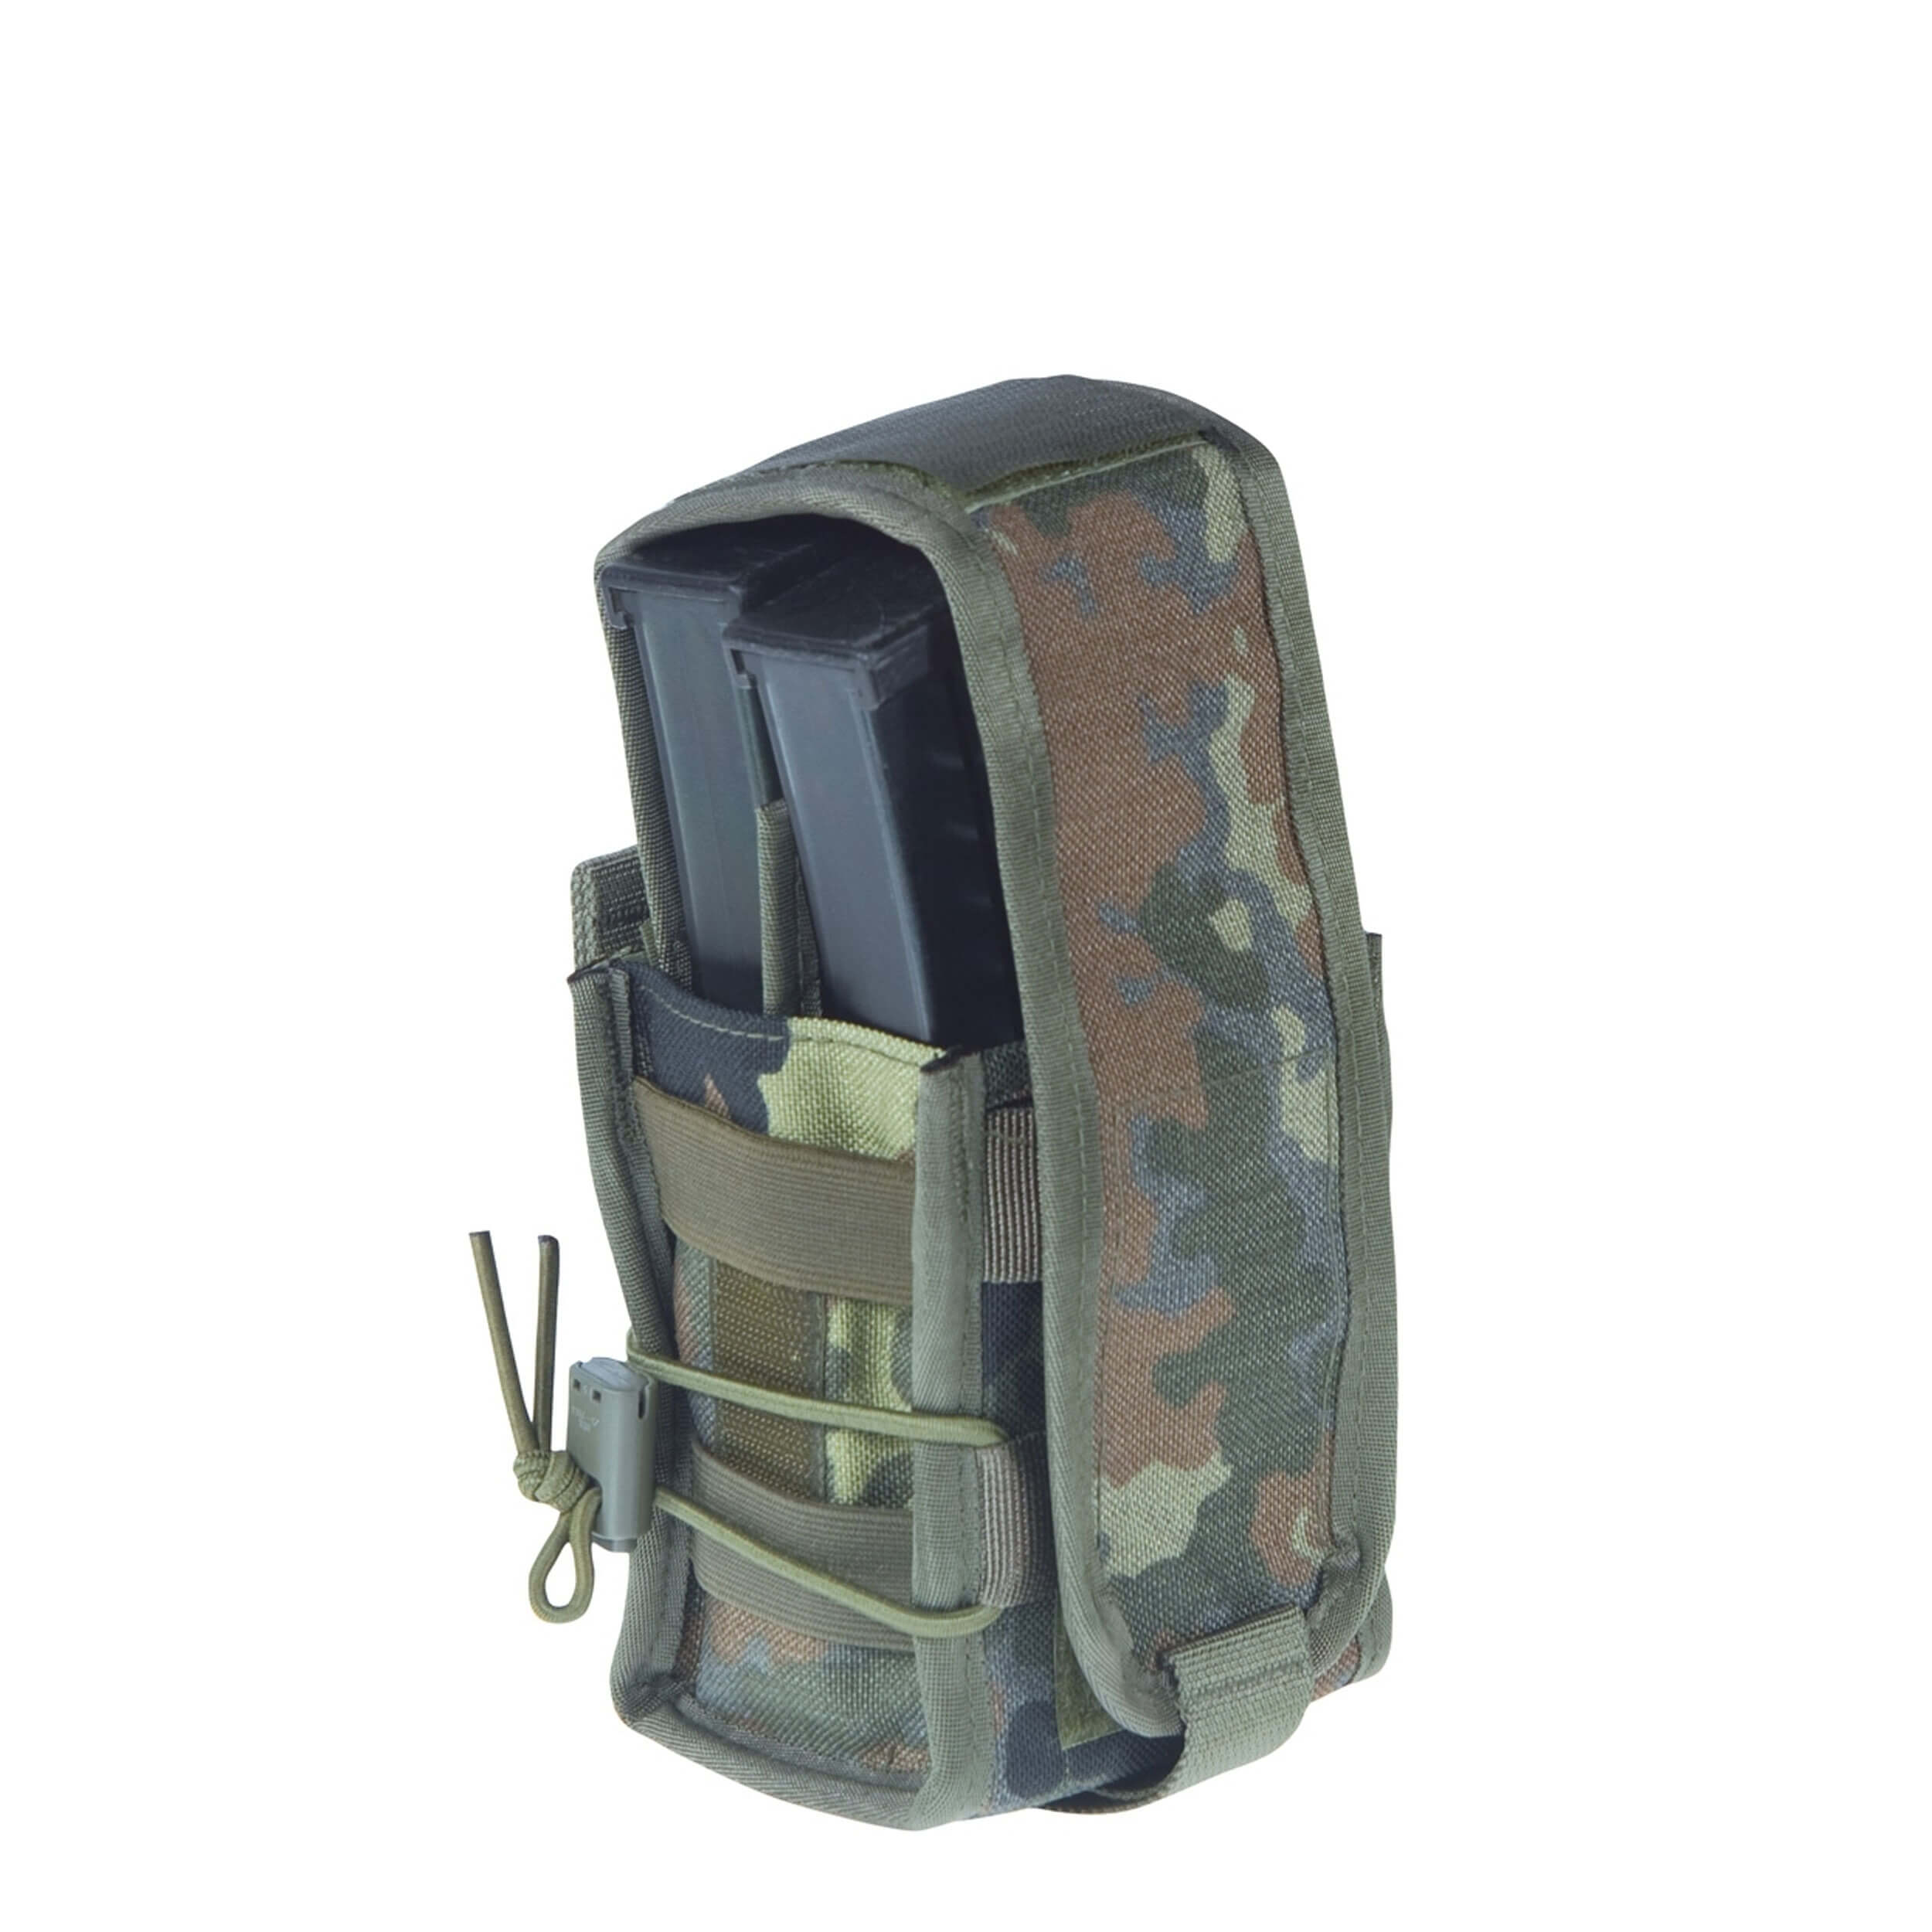 75Tactical Doppel Magazintasche G36/2 flecktarn